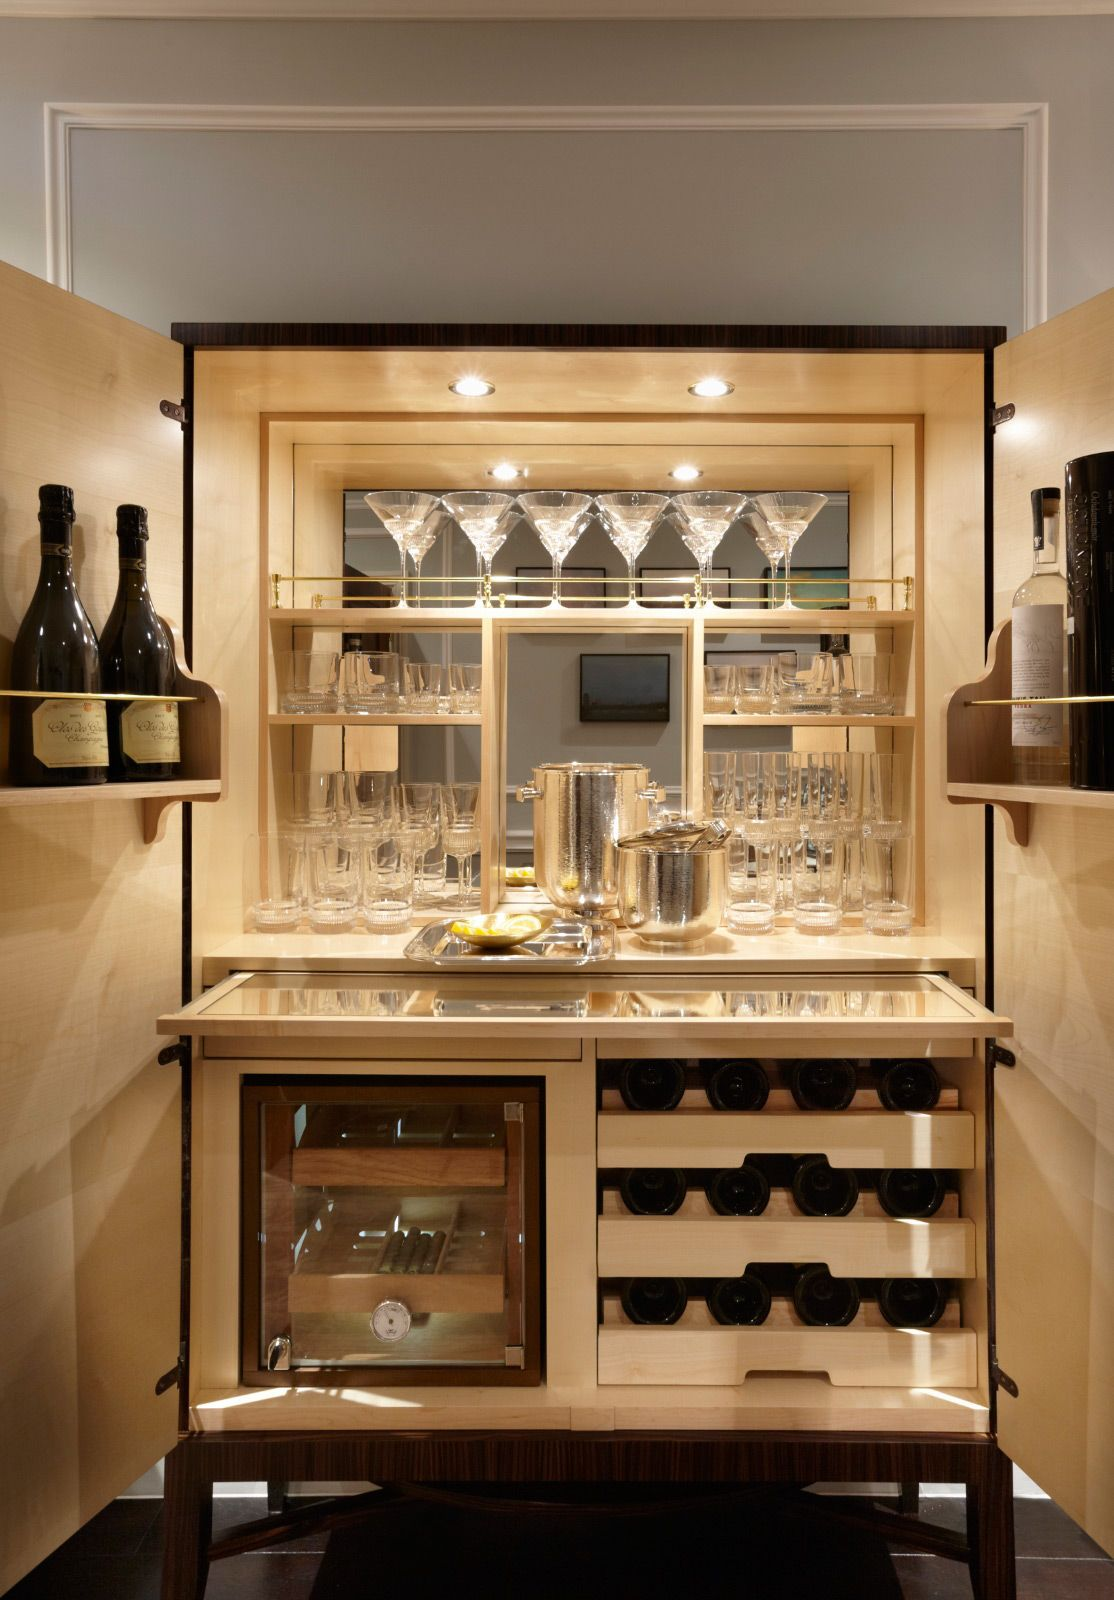 Private residence south kensington london fiona barratt interiors kitchen wear details for Kitchen with mini bar design